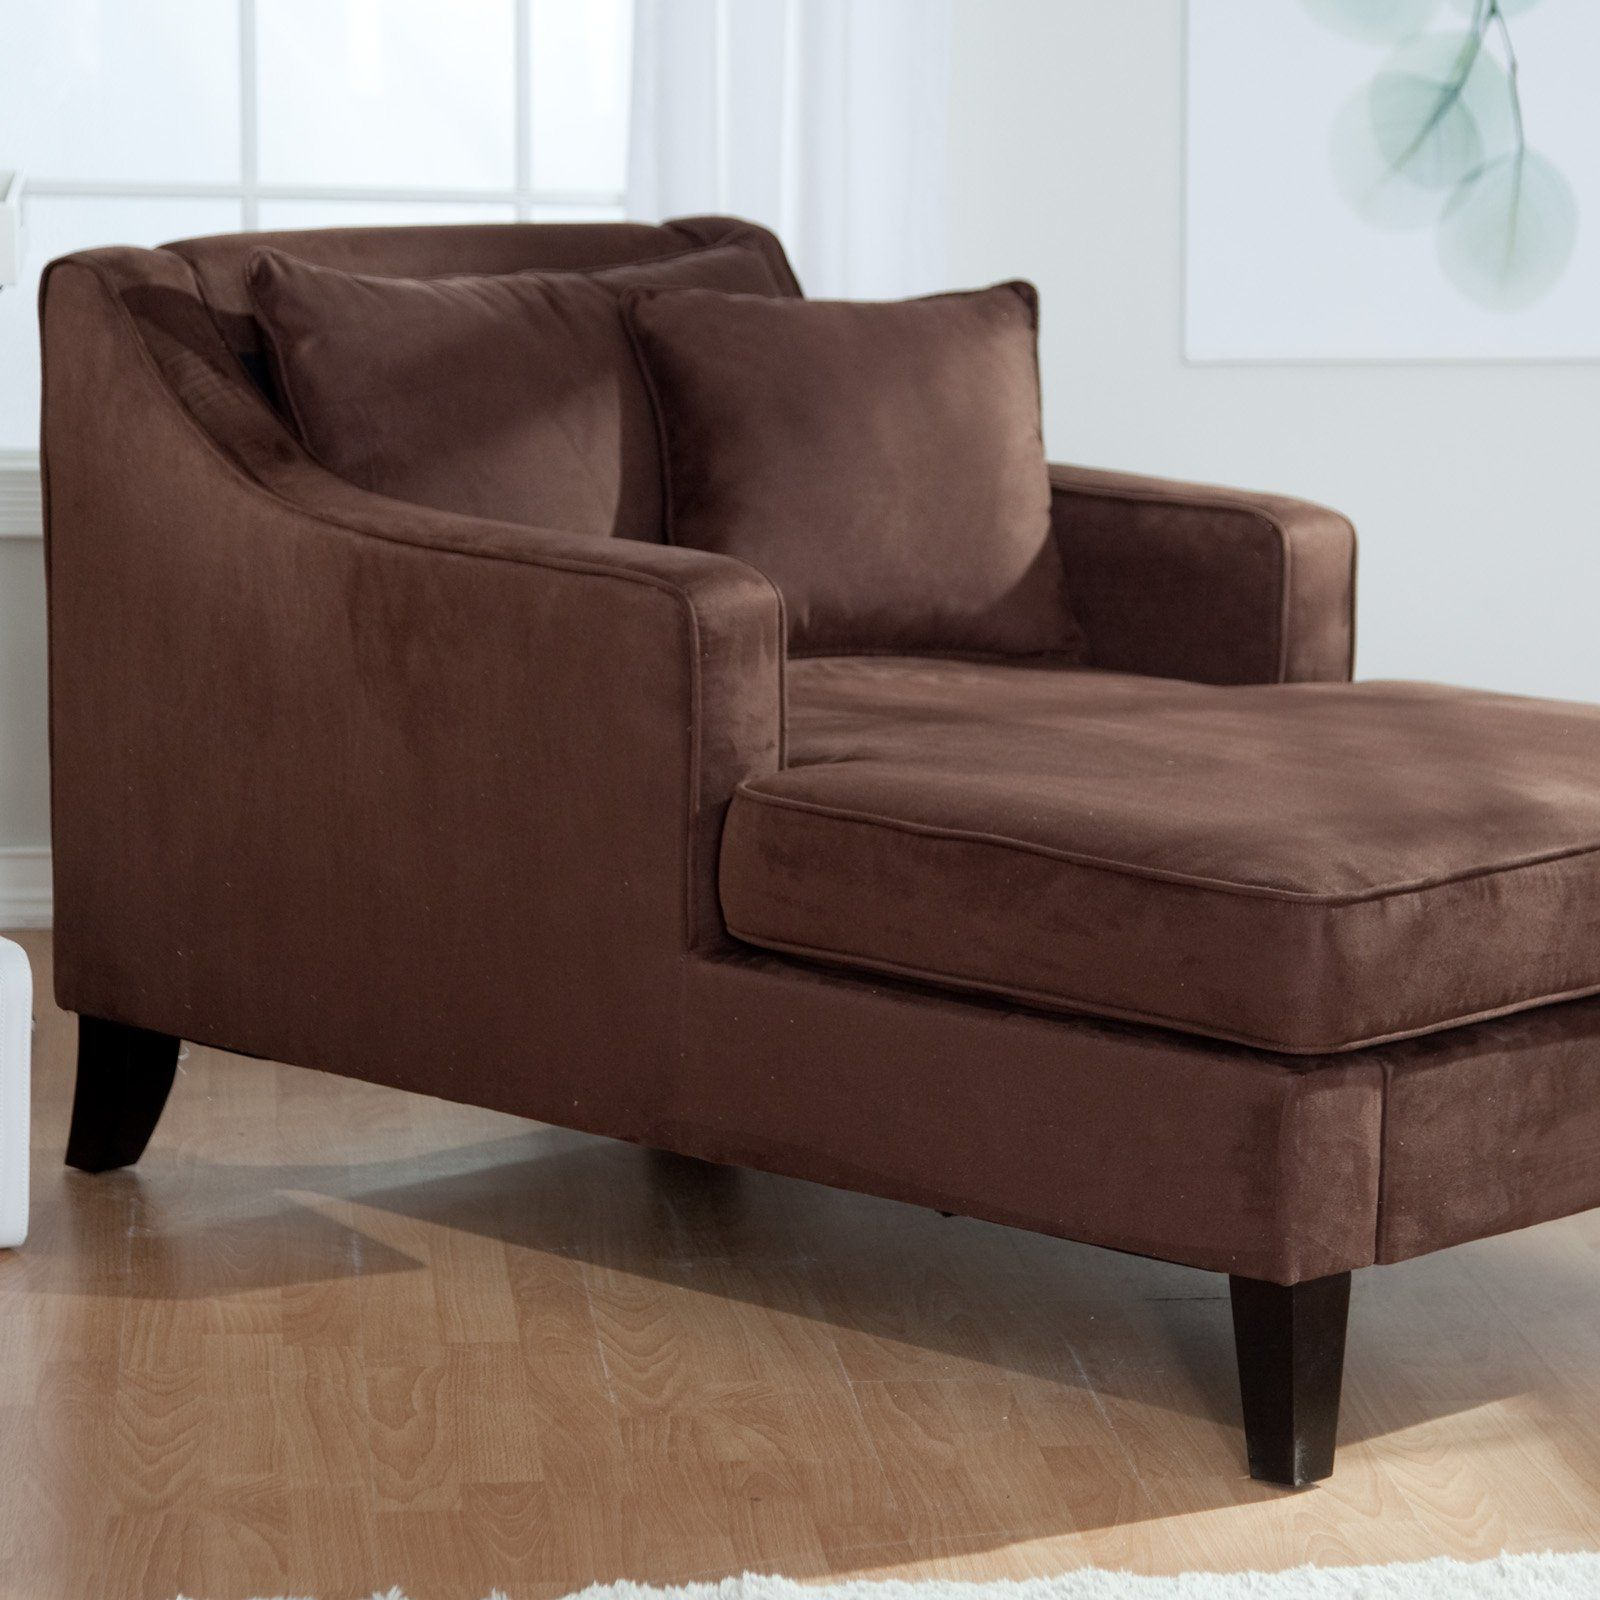 Relax In A Chaise Lounge From Hayneedle Our Chaise Lounge